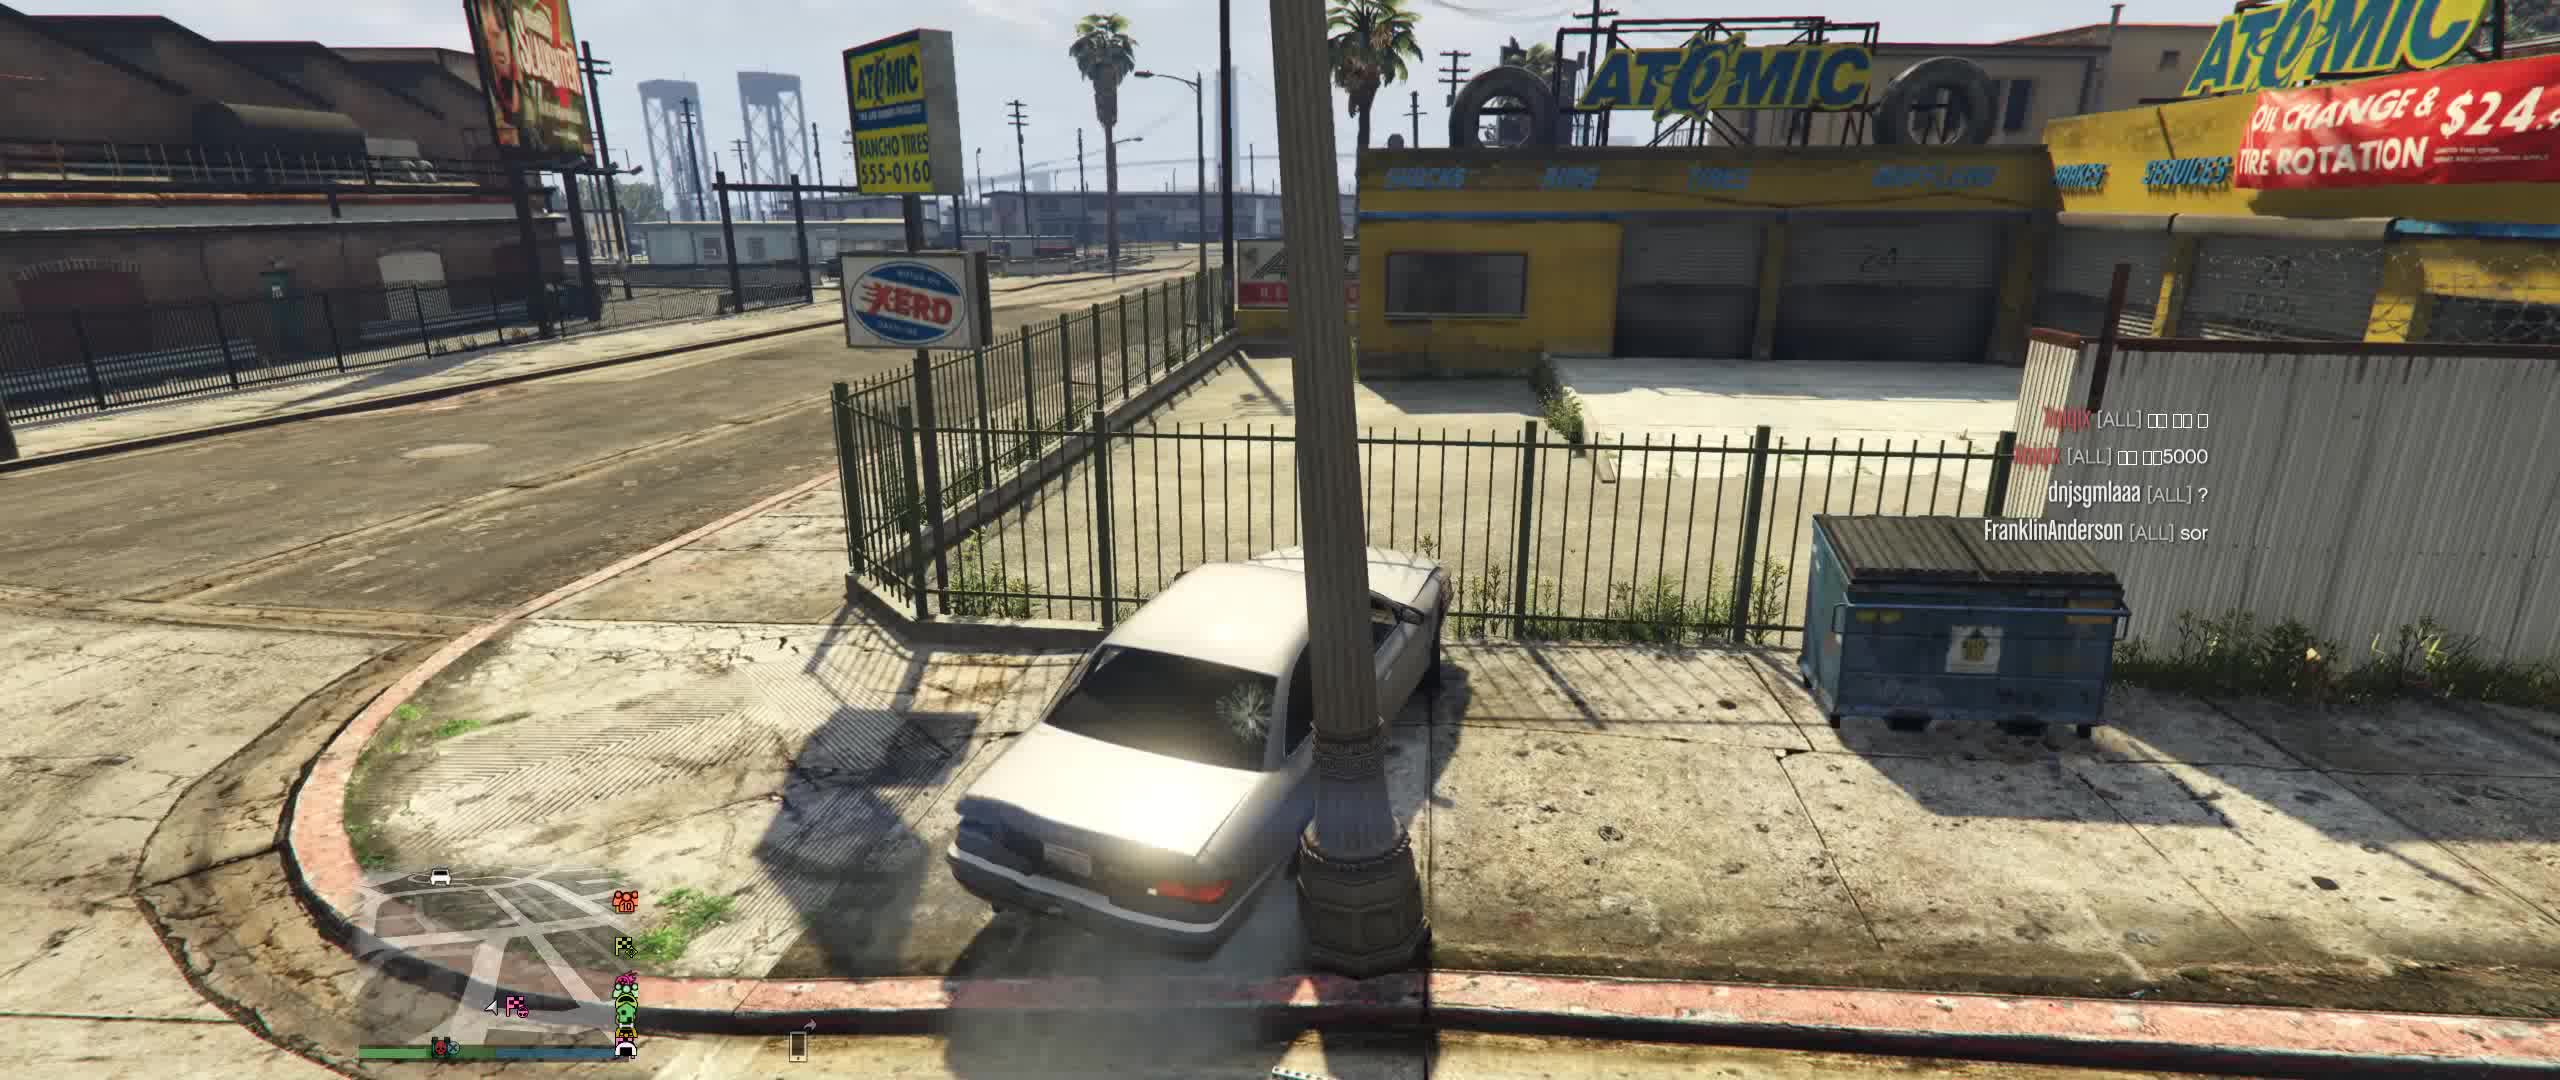 ai, car-jack, gtav, los santos, online, pc, pve, wasted, [GTAV] An attempted car-jacking GIFs